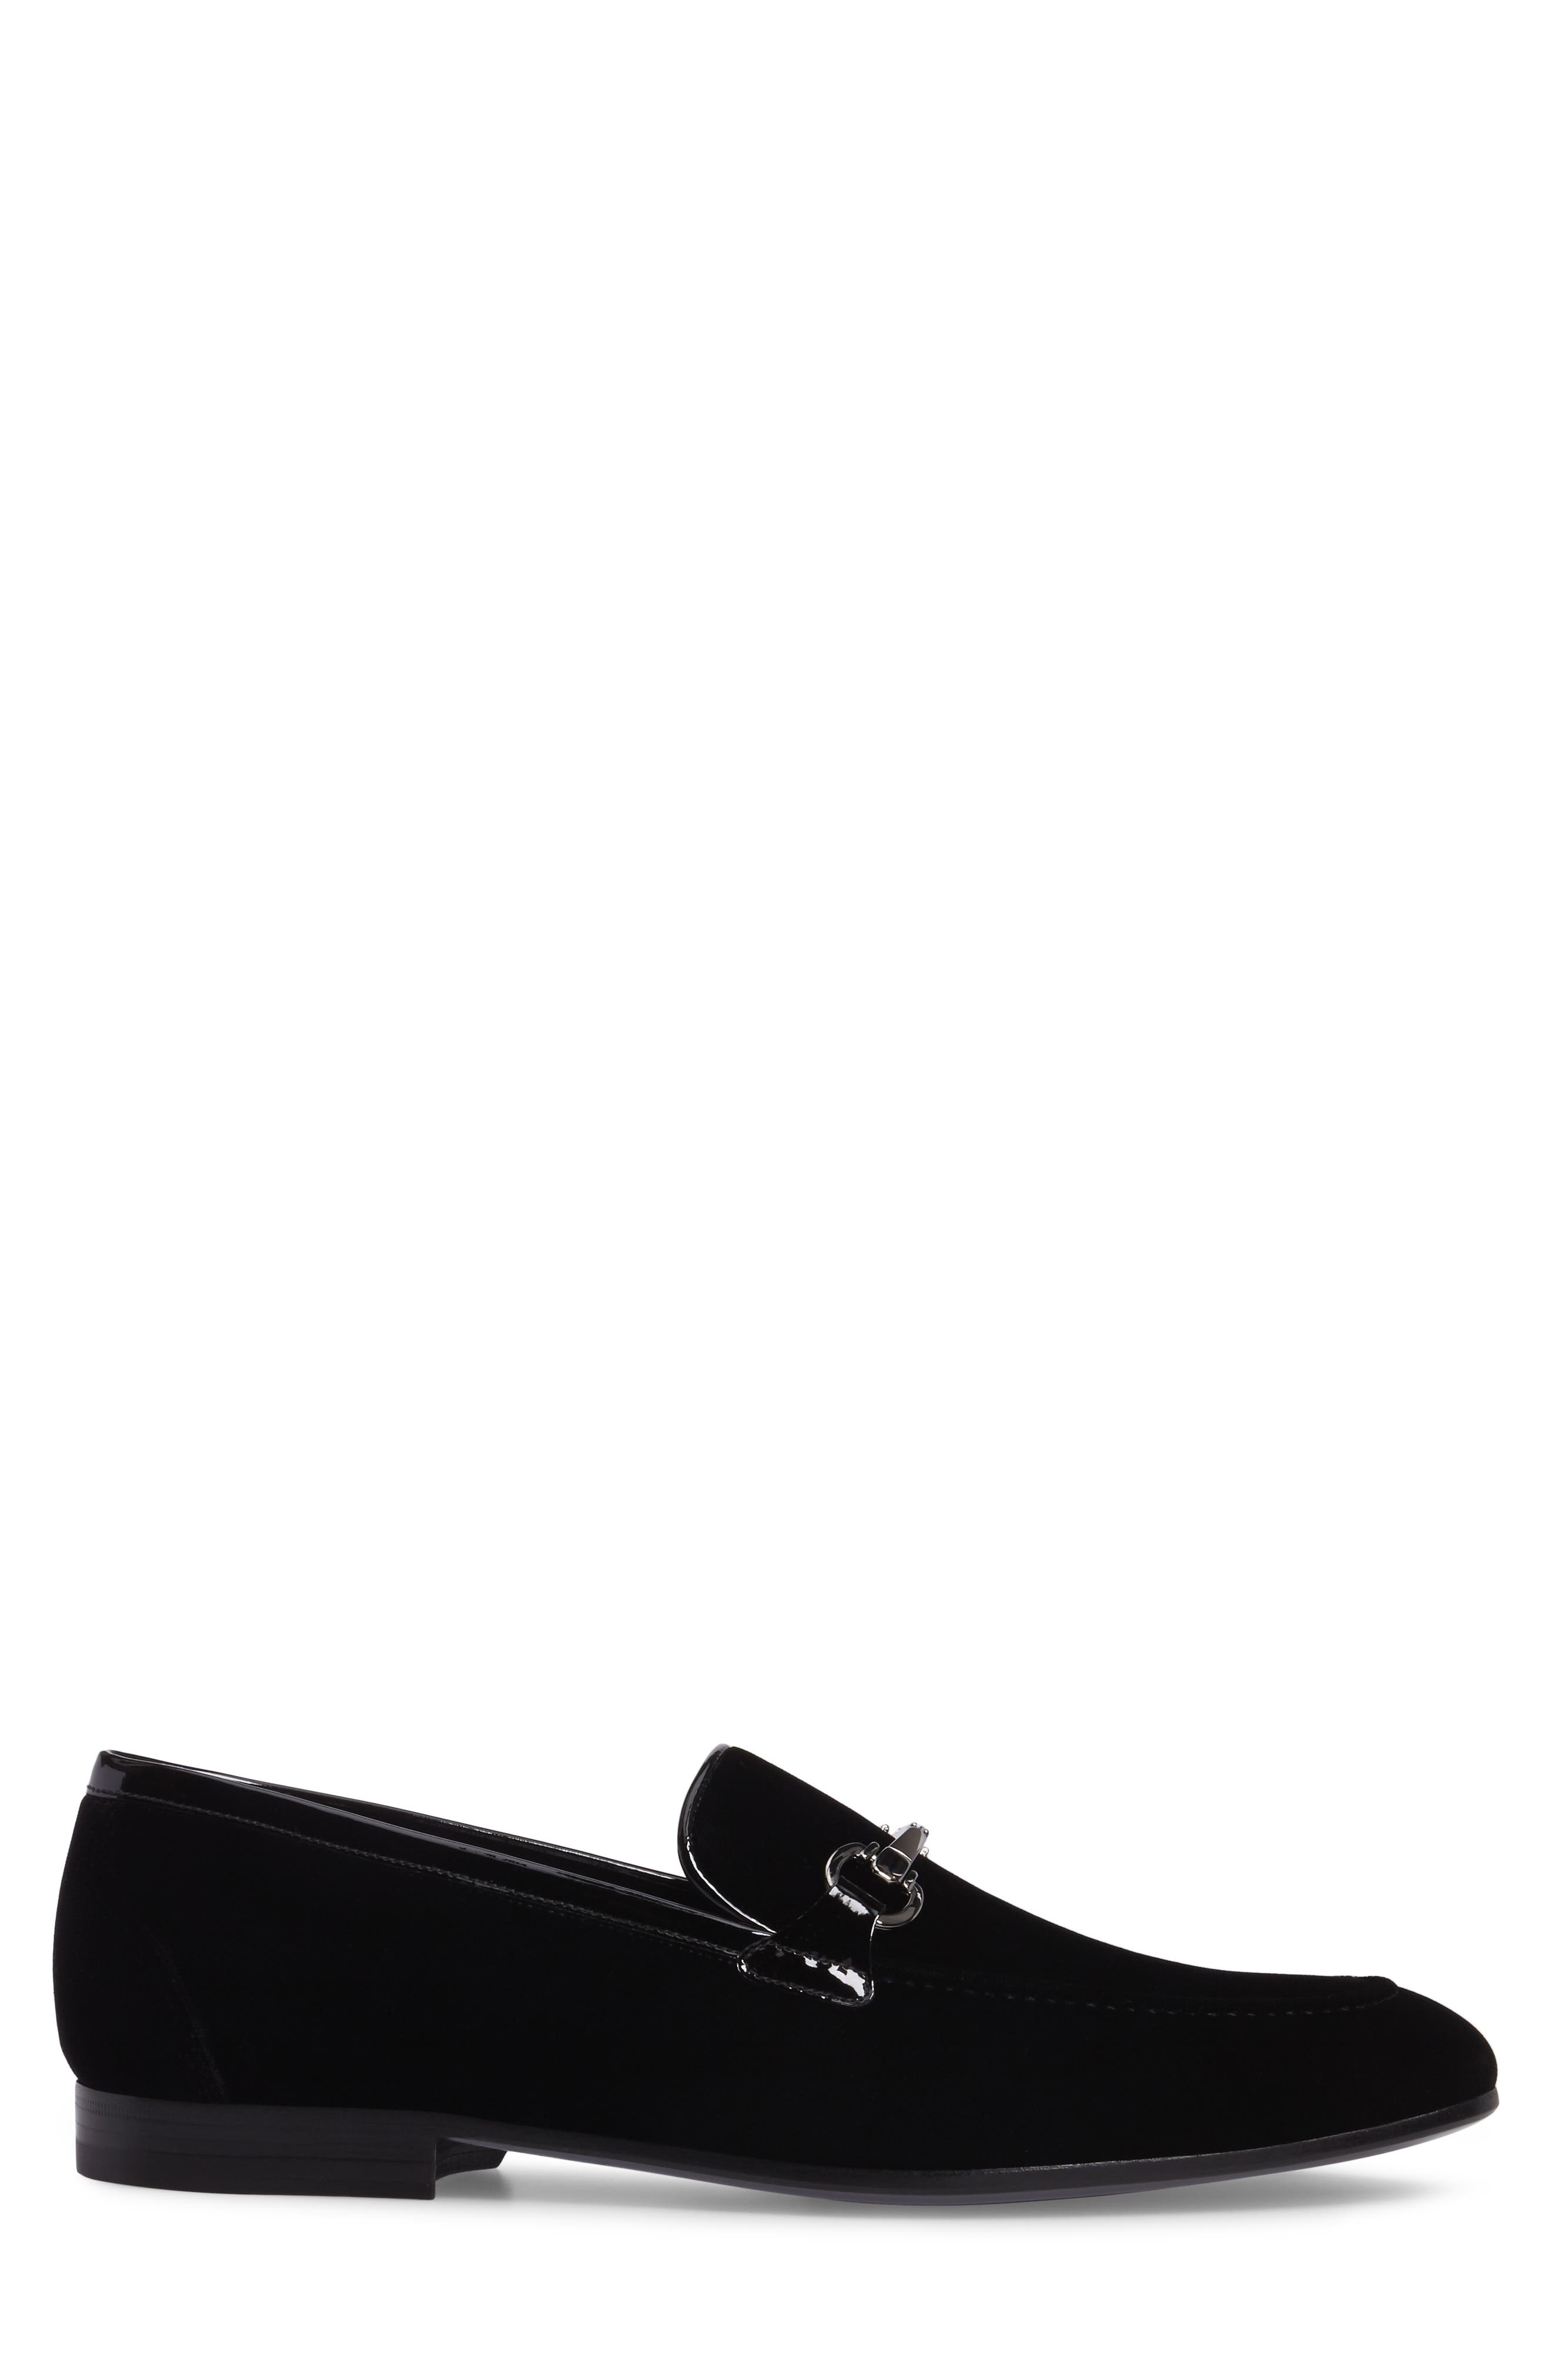 Brianza Bit Loafer,                             Alternate thumbnail 15, color,